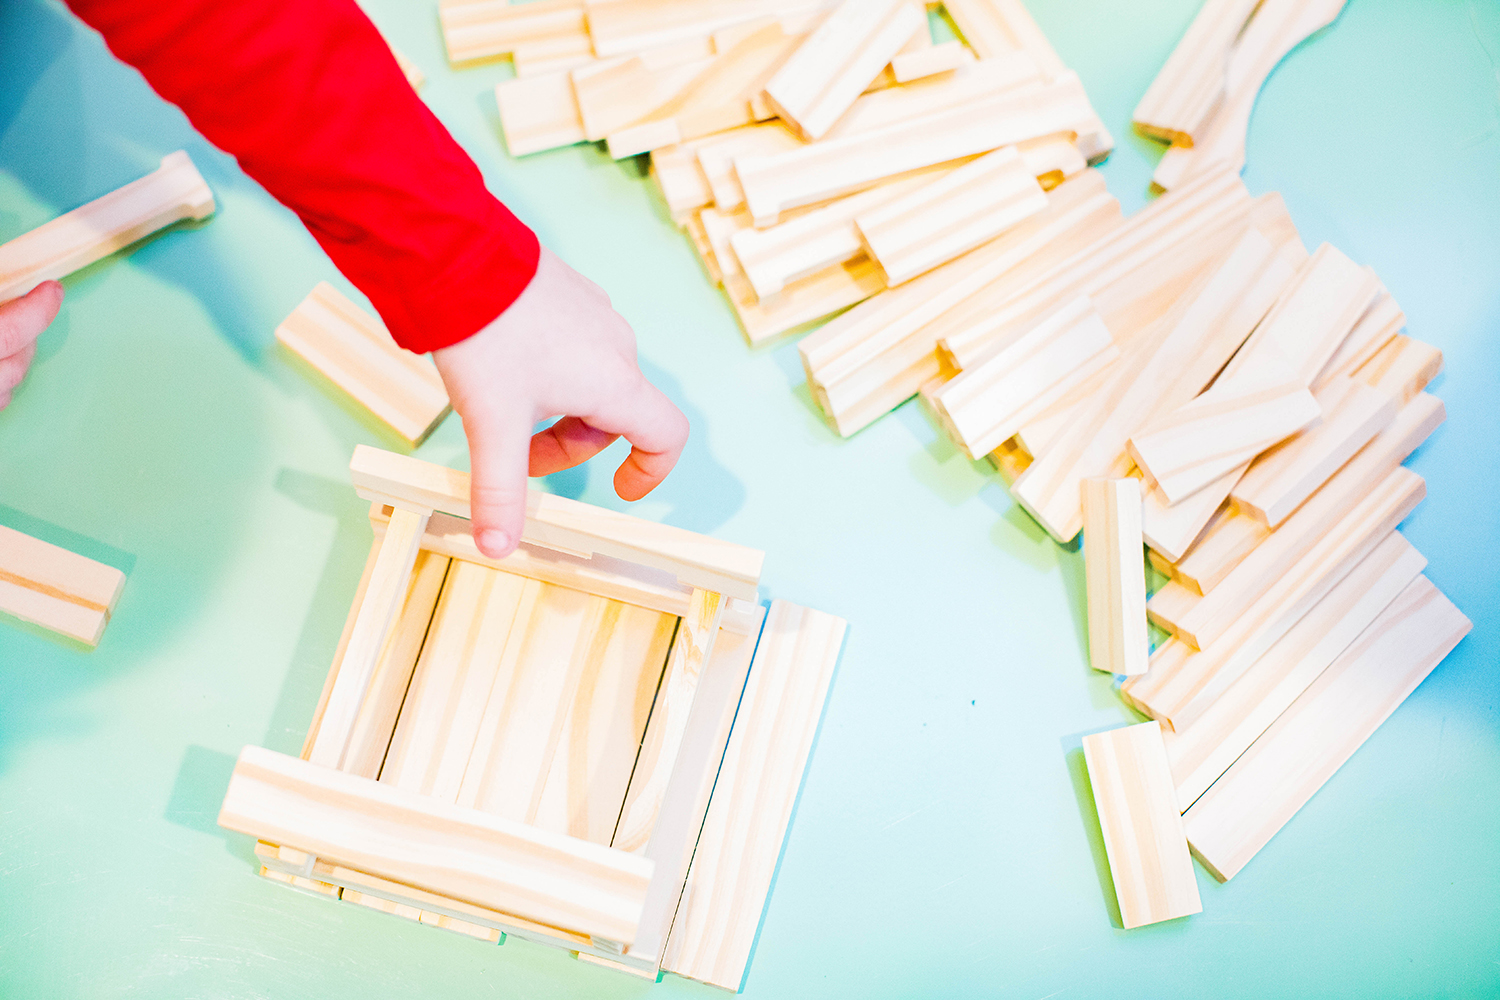 Need recommendations for educational play tools? This teacher's review of keva planks is SUPER helpful!